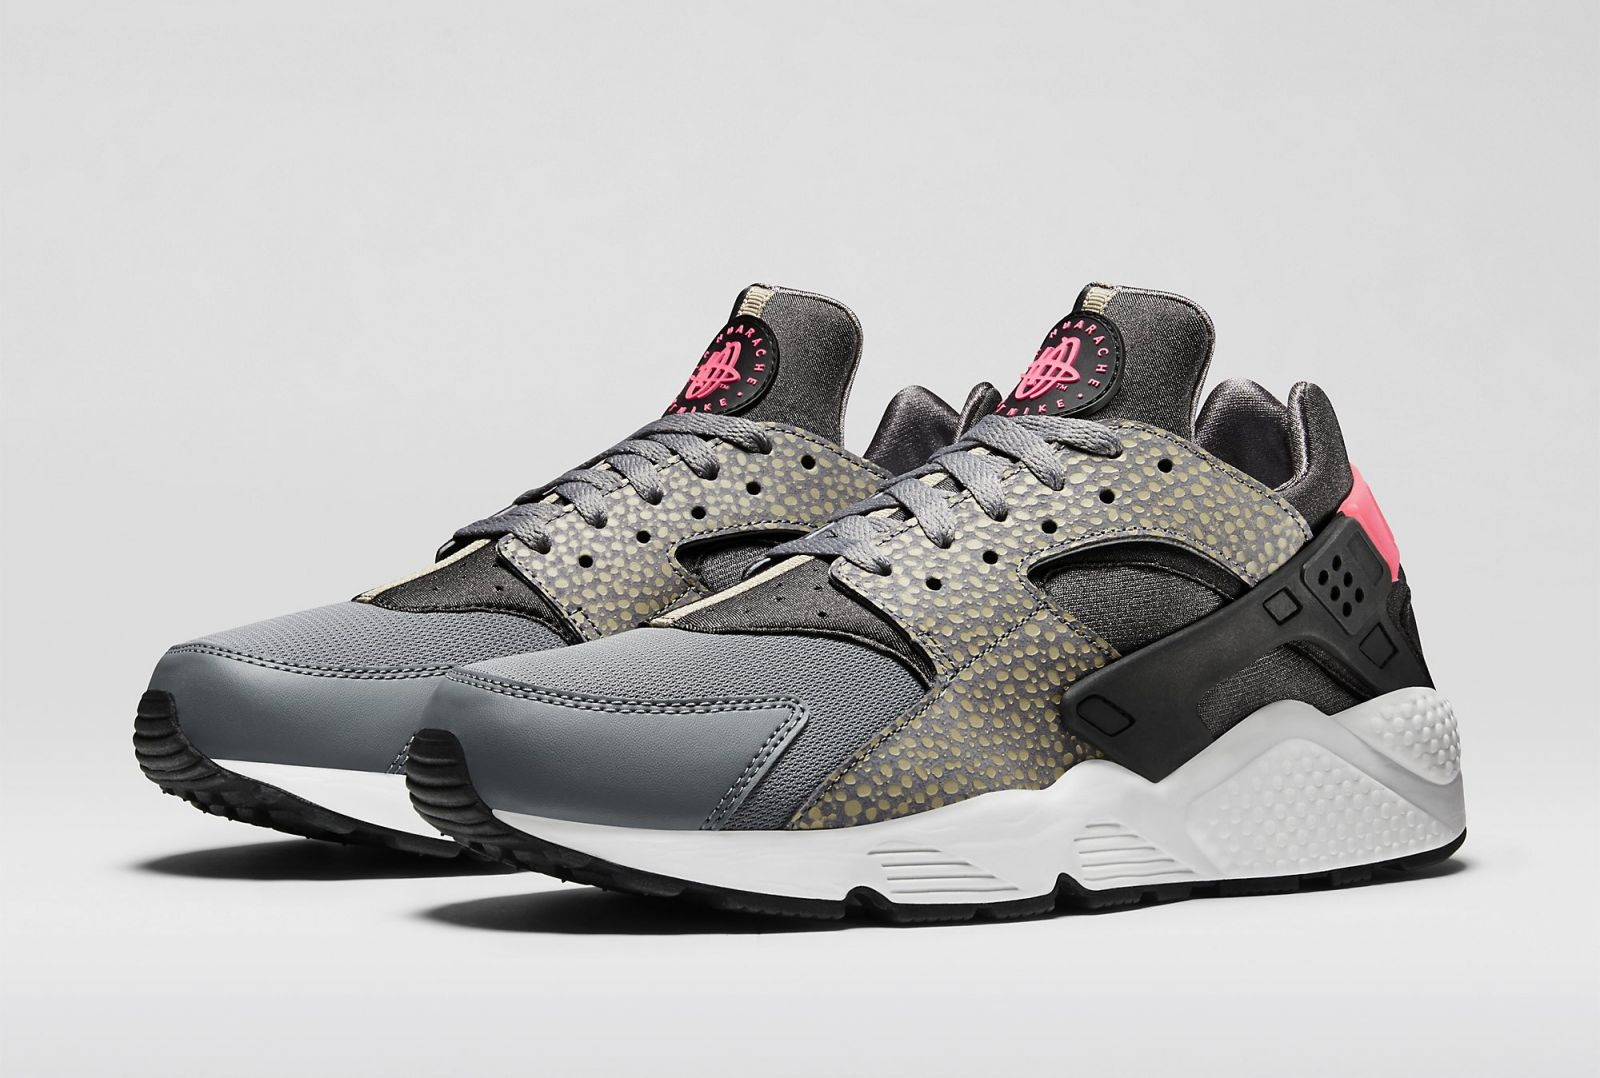 Nike Air Huarache Safari Grey Black Hyper Punch